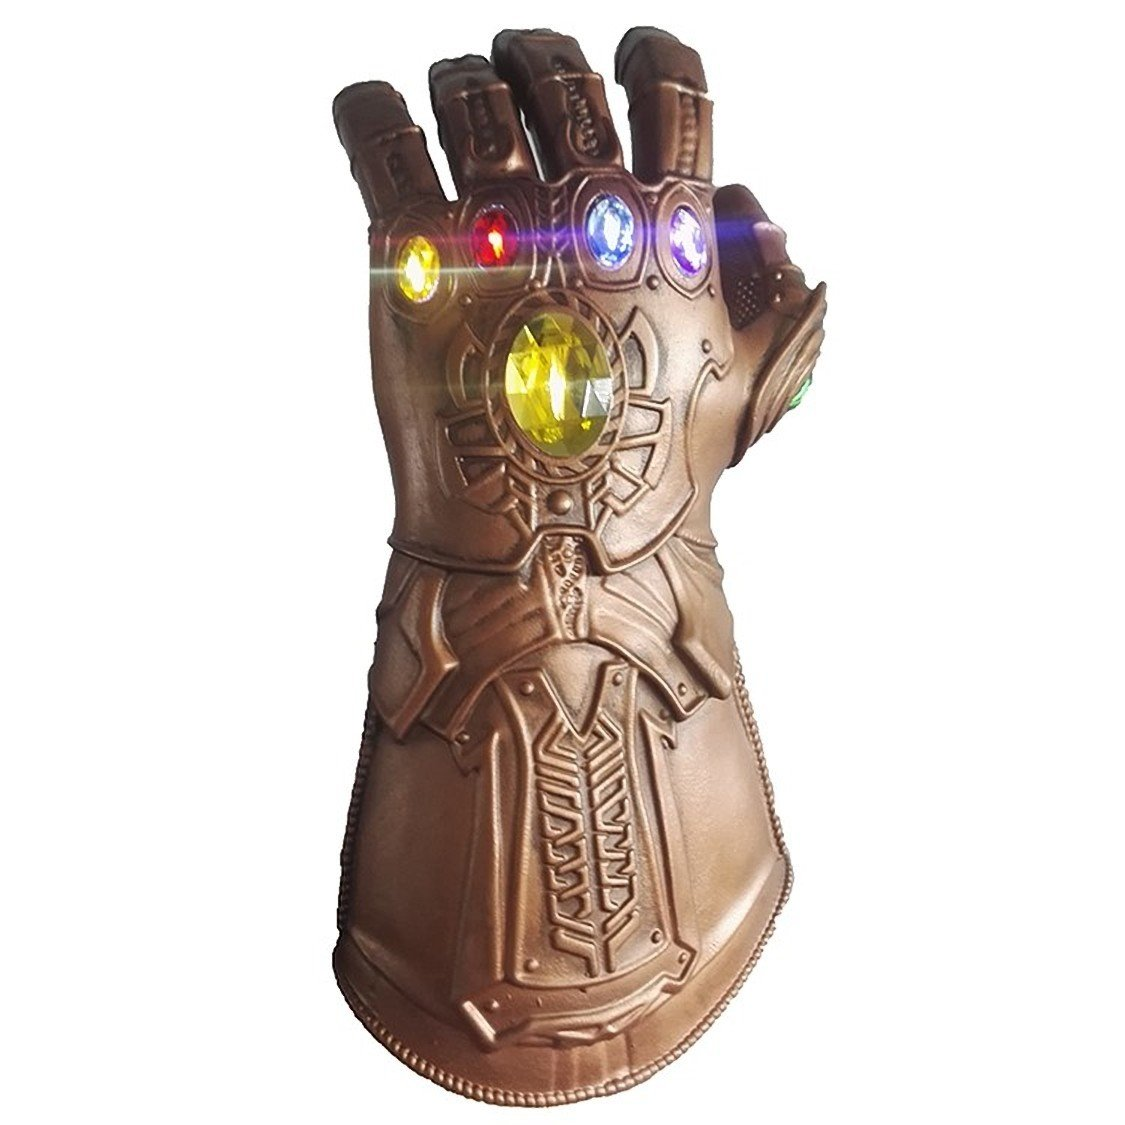 LED Thanos Superhero Avengers Infinity Gold Gauntlet Glove Luminous Stones